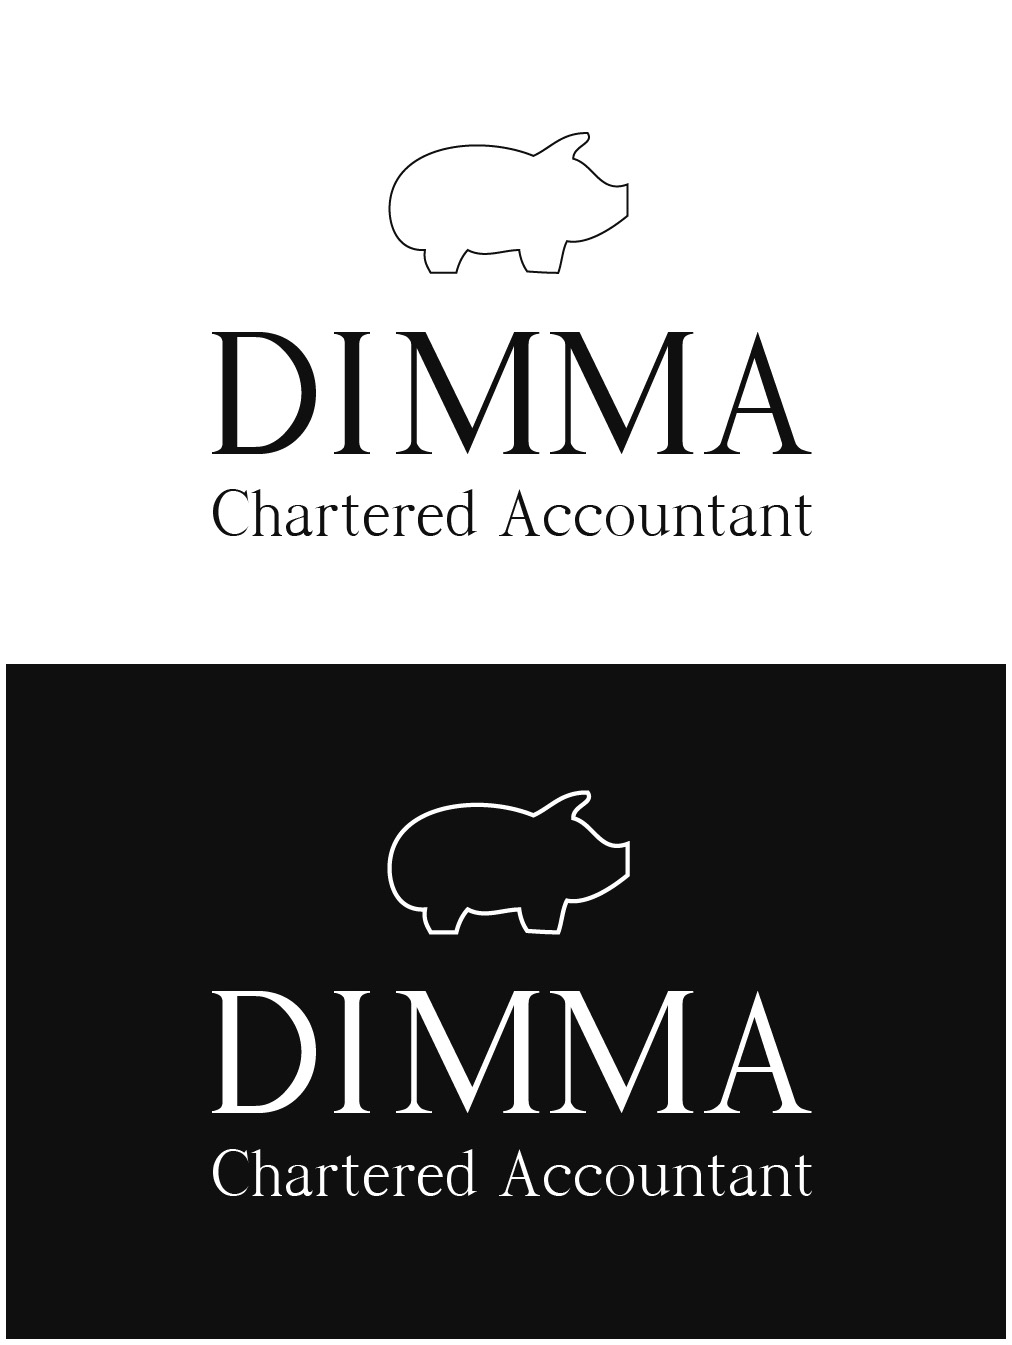 Logo Design by gkonta - Entry No. 33 in the Logo Design Contest Creative Logo Design for Dimma Chartered Accountant.